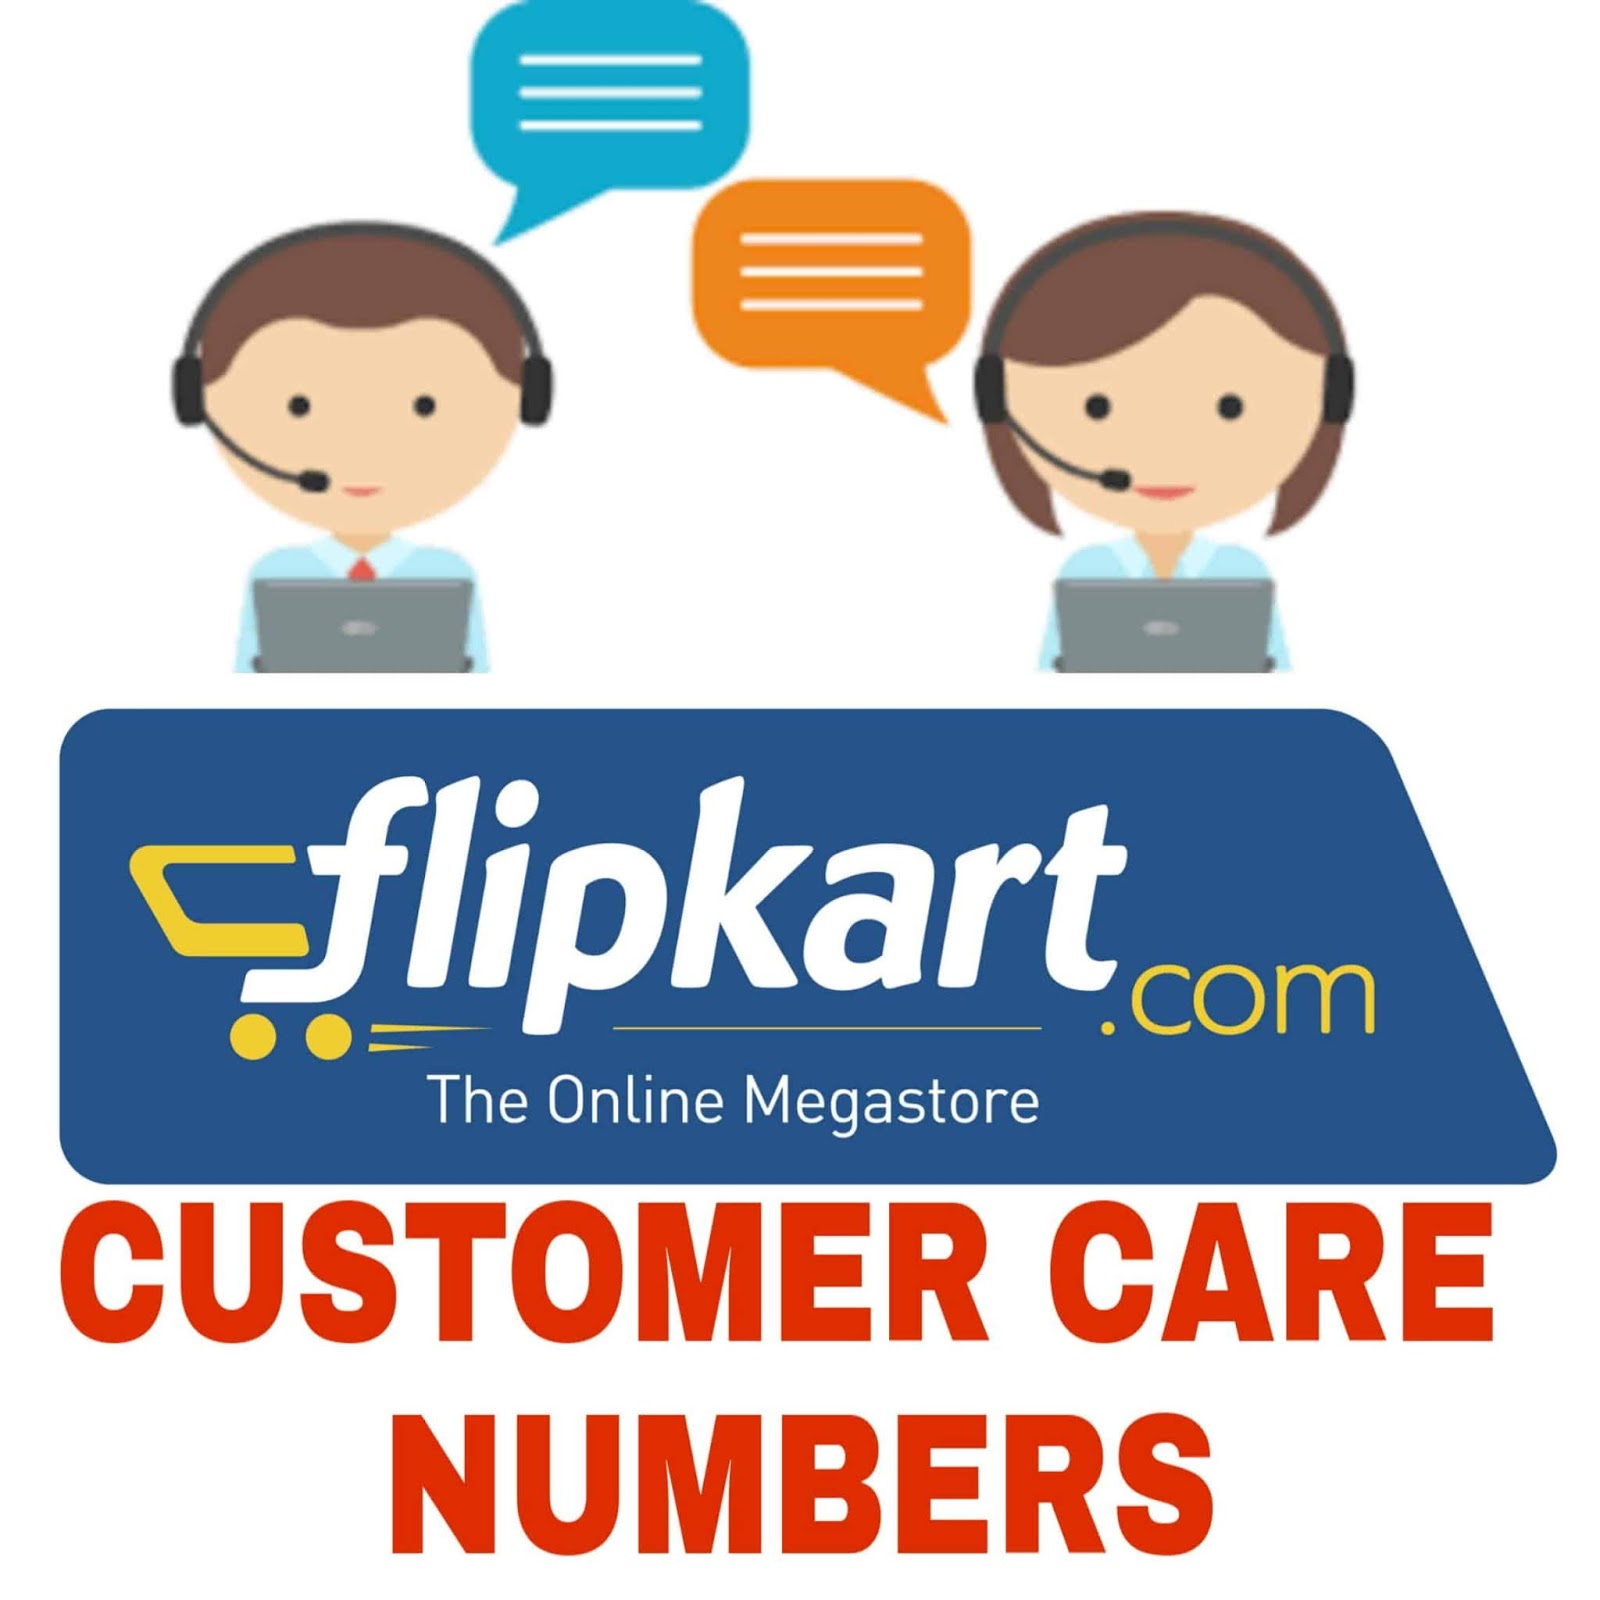 Clipart customer care number library Flipkart Customer Care Number | Flipkart India & Connect Flipkart ... library